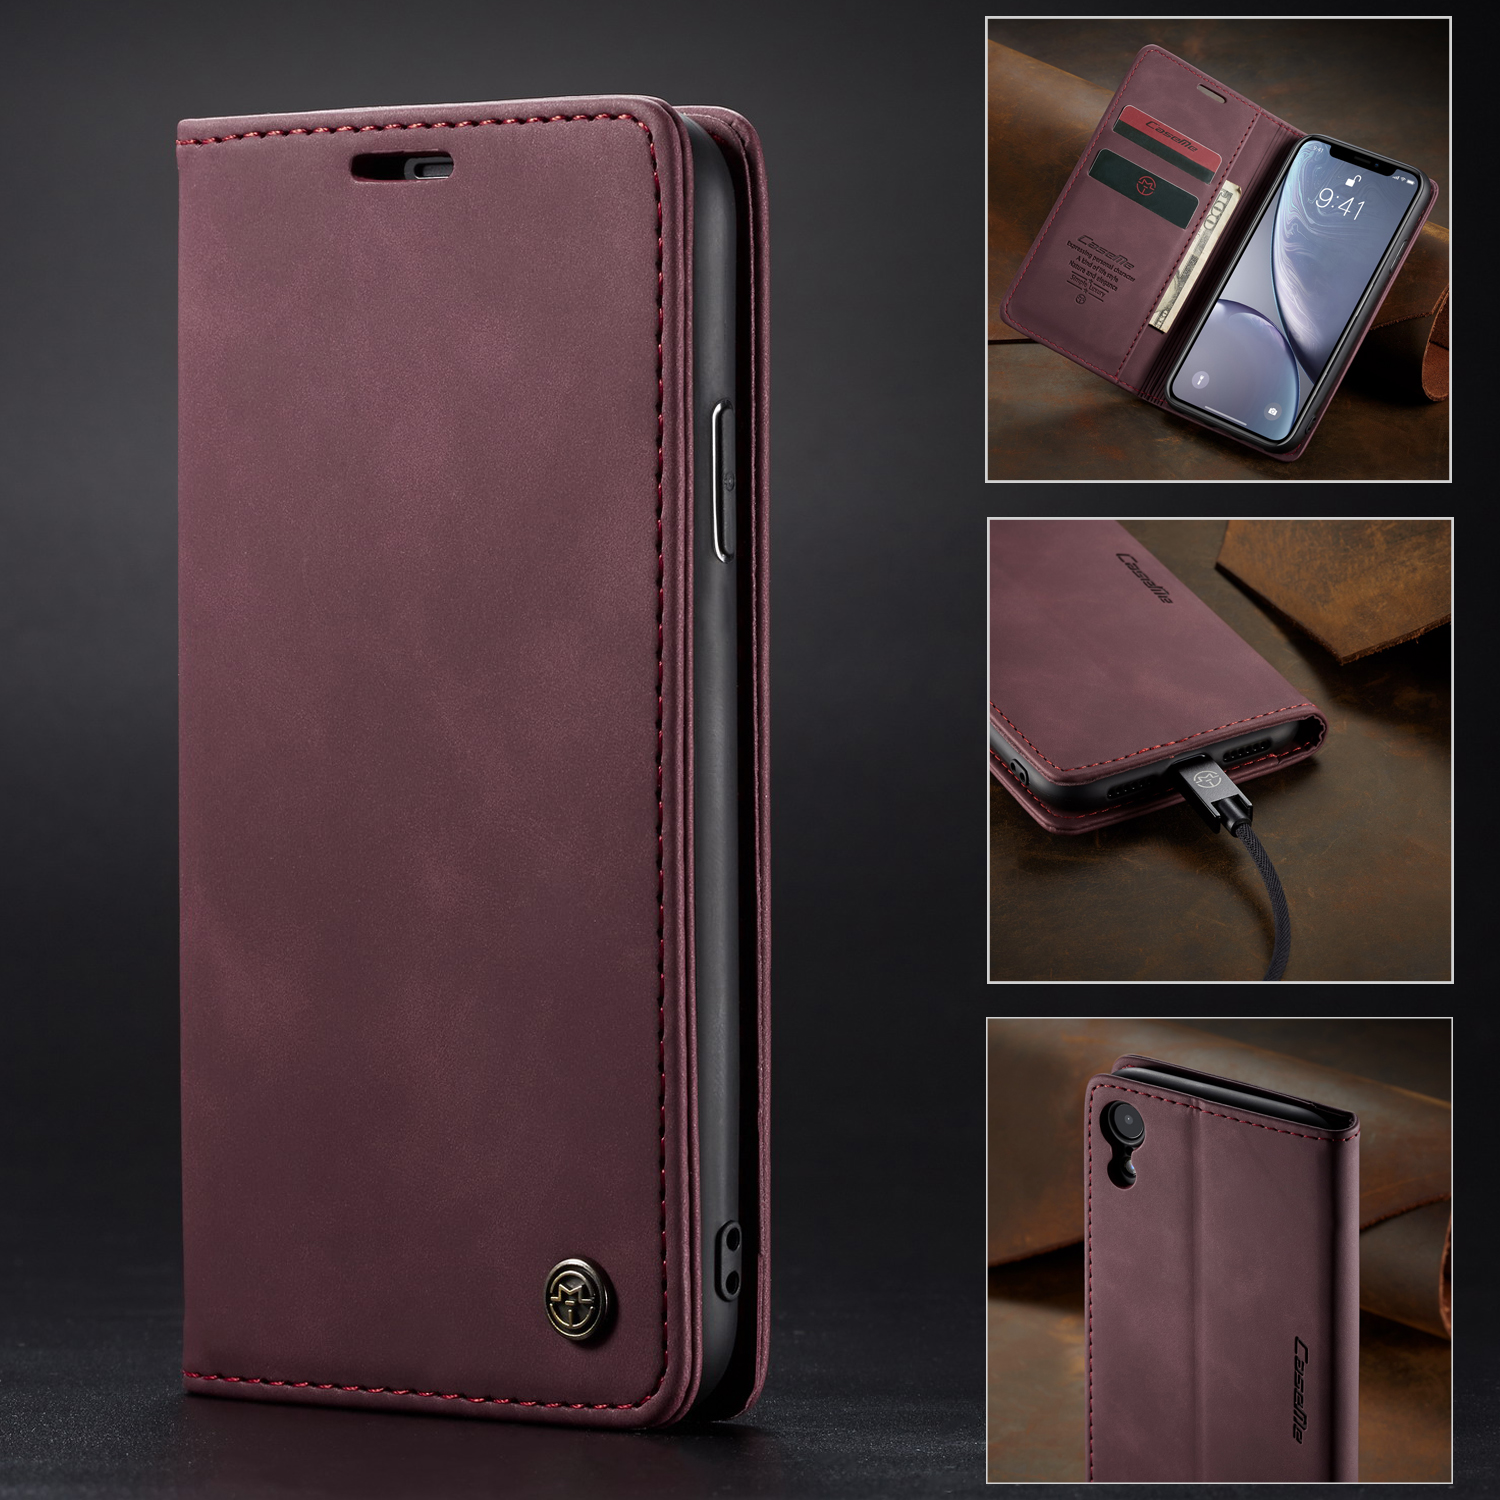 <font><b>Original</b></font> Brand Luxury Matte Leather <font><b>Case</b></font> For <font><b>iPhone</b></font> <font><b>X</b></font> <font><b>XS</b></font> MAX XR 6 6s 7 8 Plus 5s SE Auto Magnetic Flip Wallet <font><b>Case</b></font> Cover <font><b>XS</b></font> MAX image